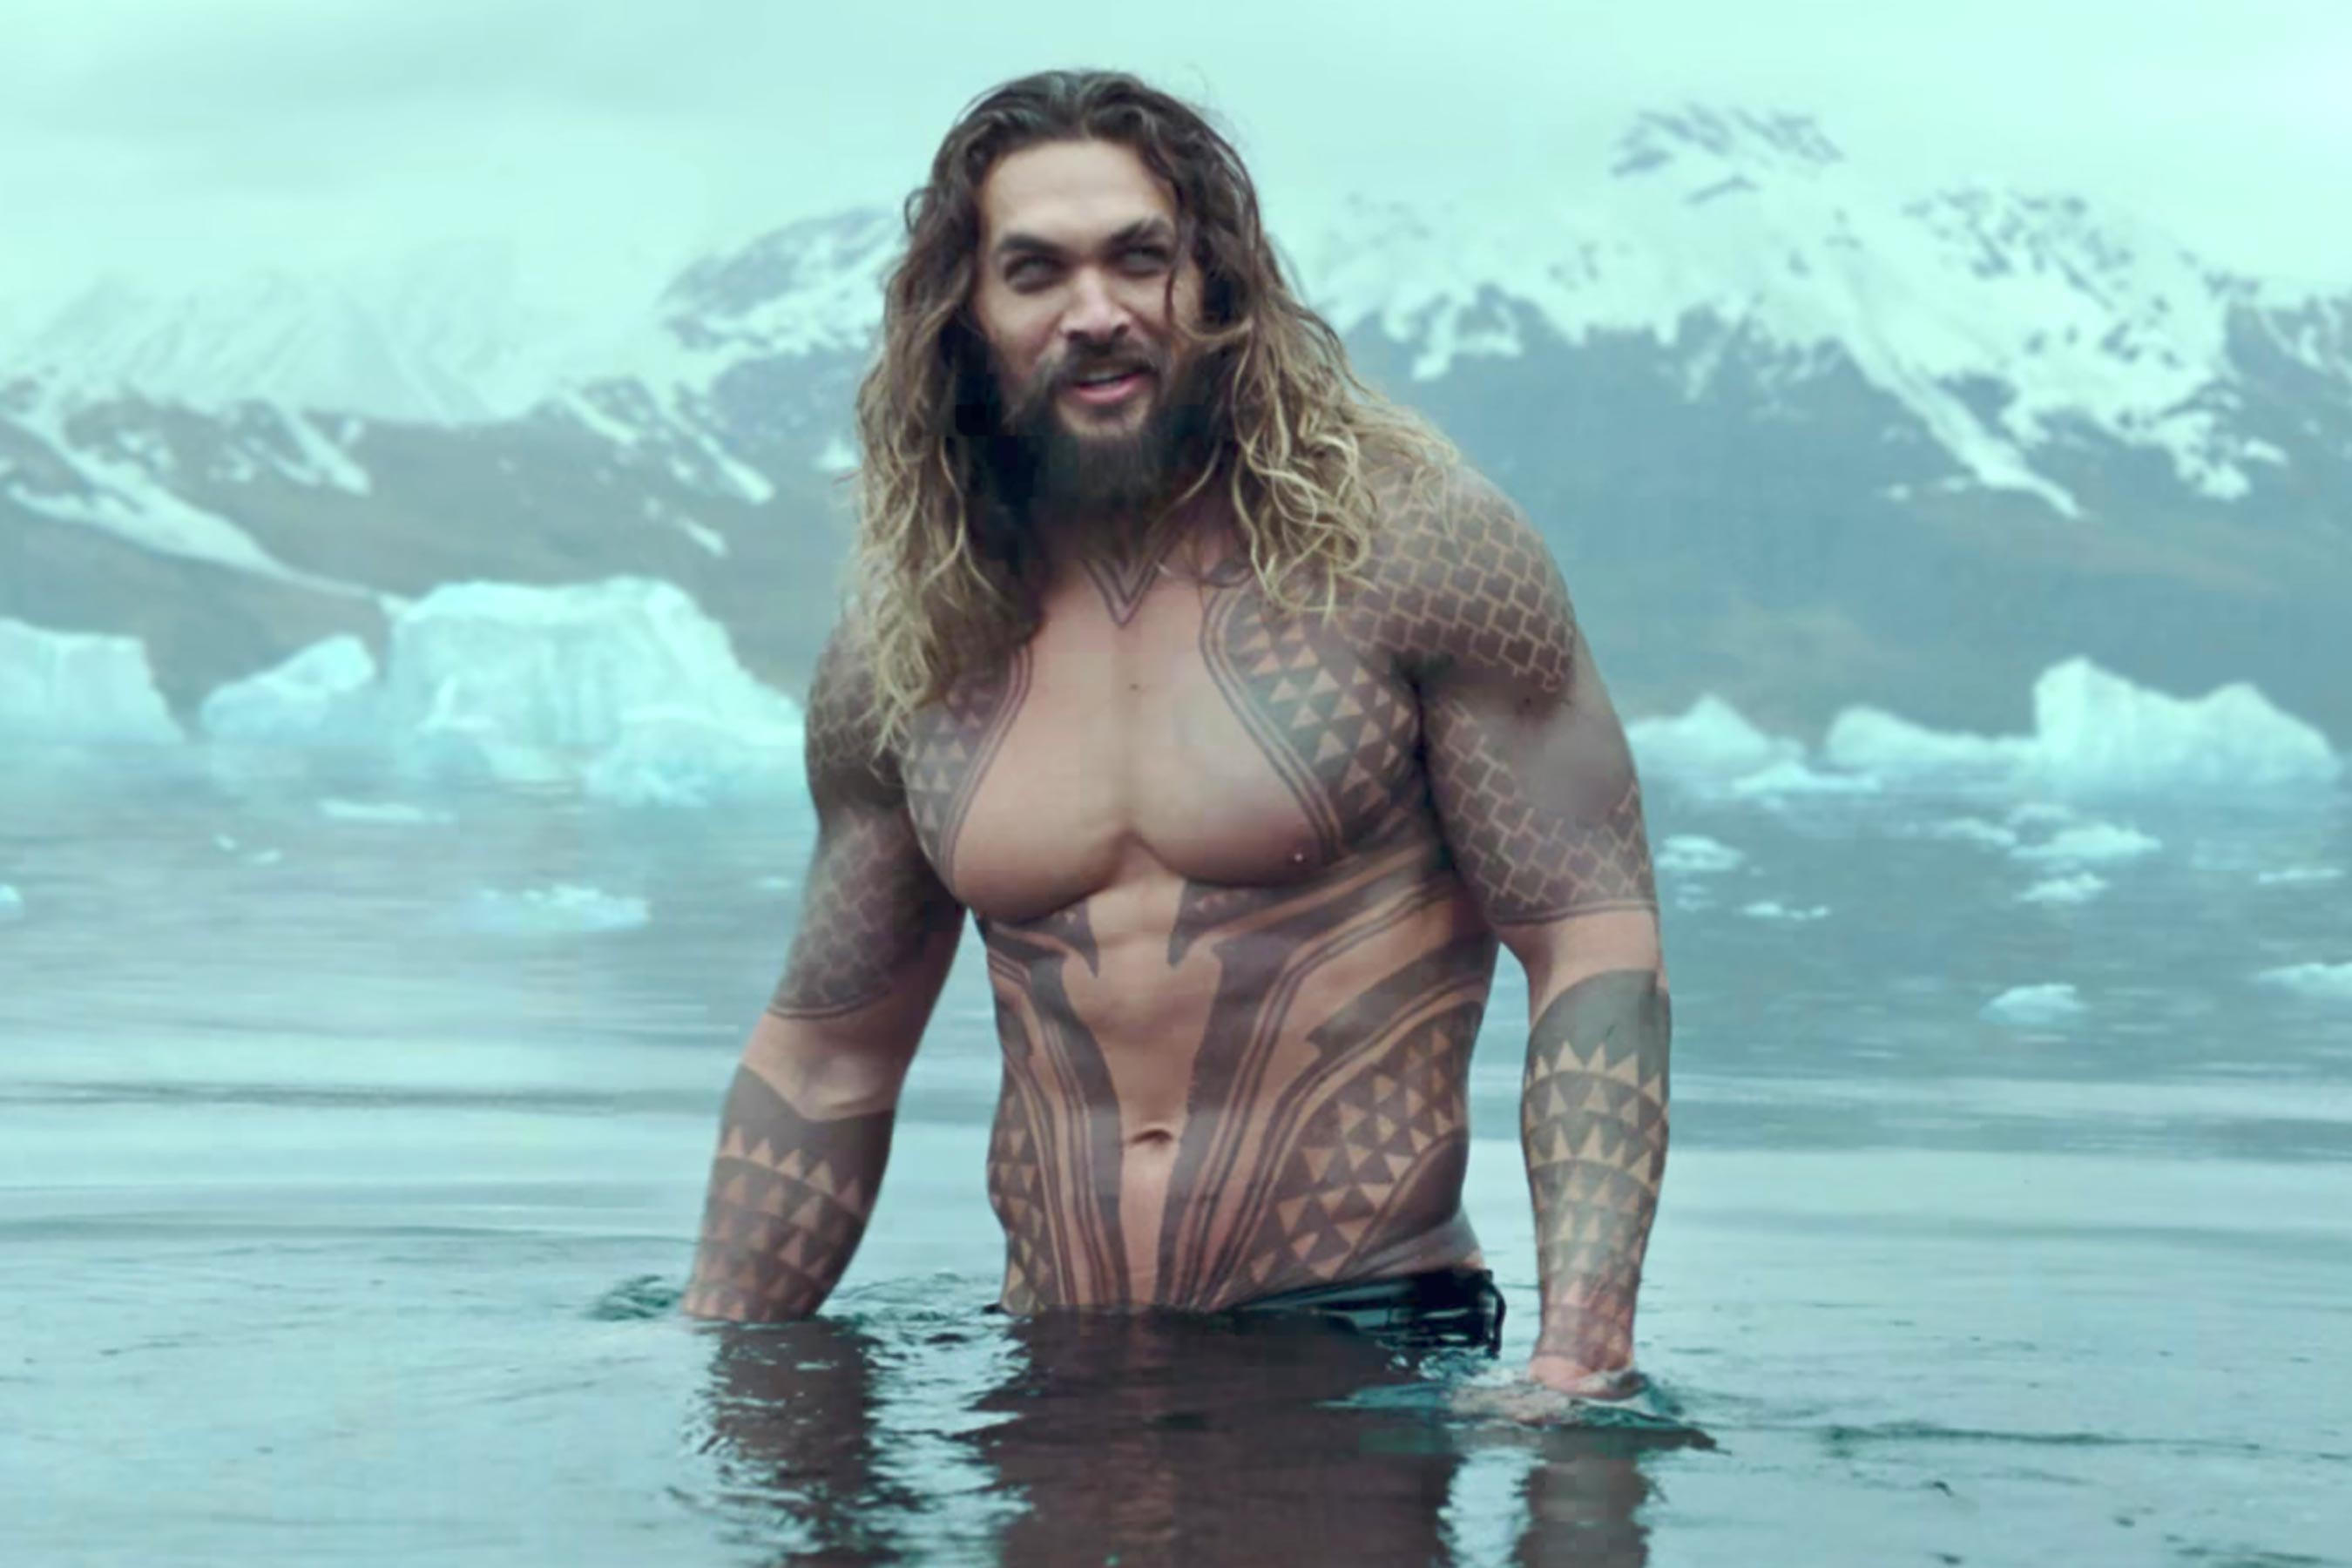 'Aquaman' star Jason Momoa admits jeans were a 'bad choice'